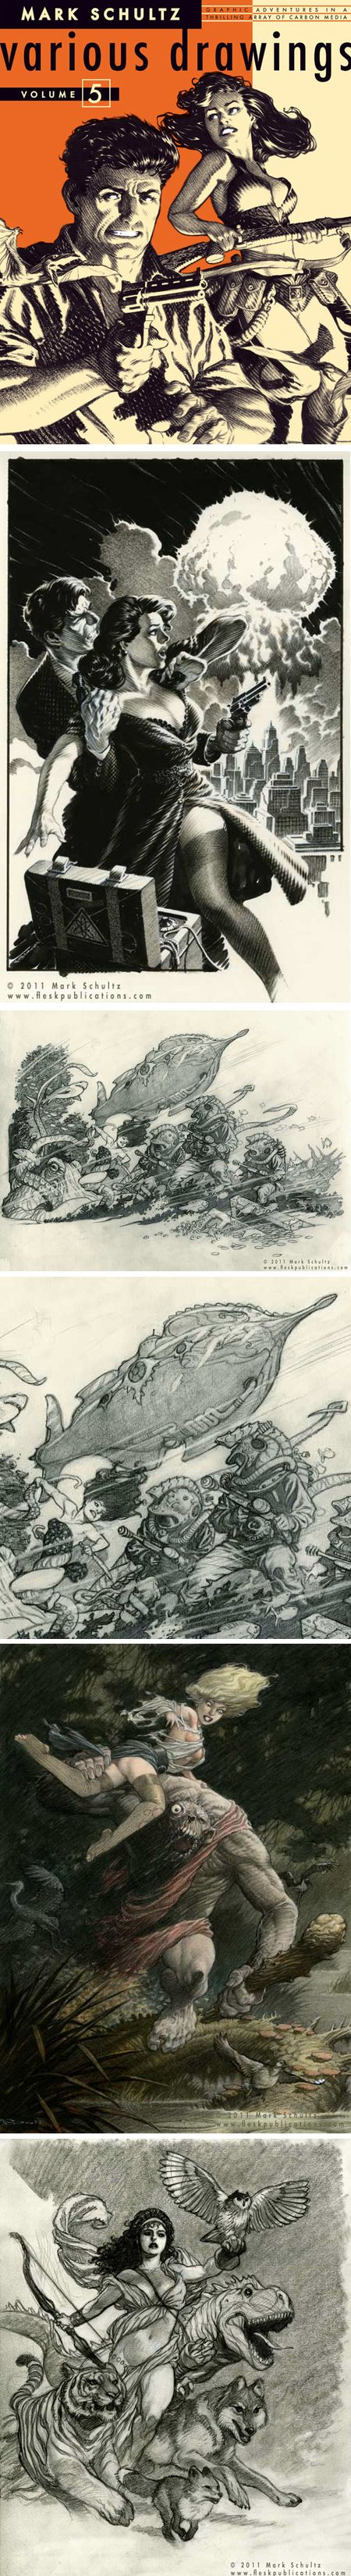 Mark Schultz: Various Drawings Volume 5